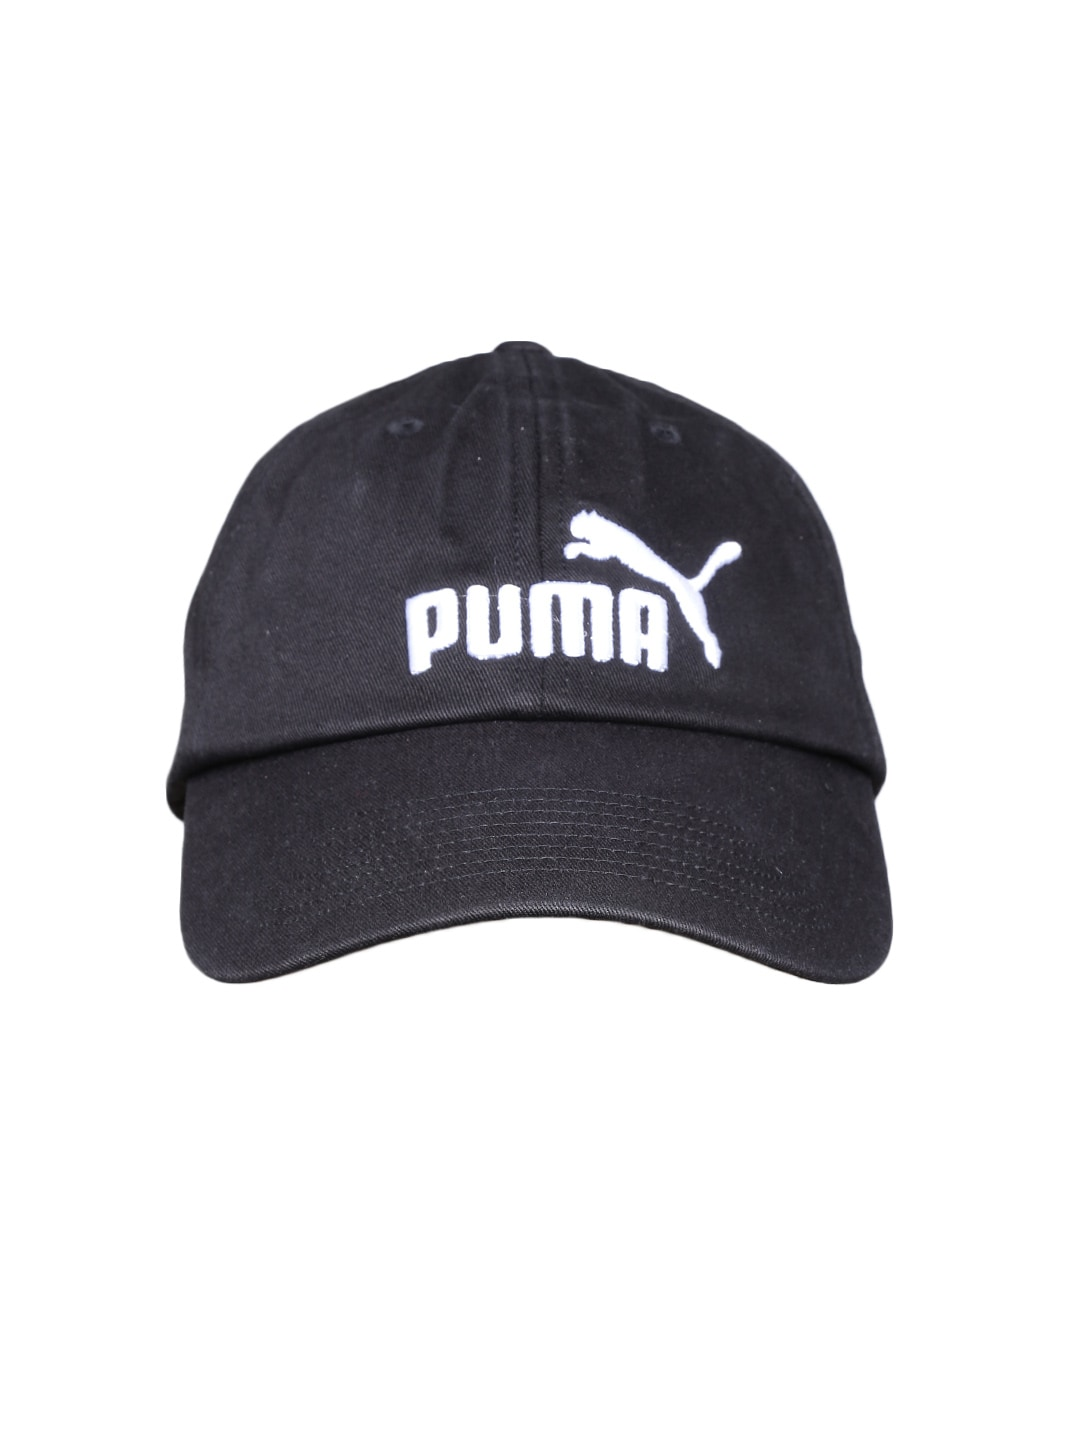 e50433fef60 Puma Men Sports Caps - Buy Puma Men Sports Caps online in India